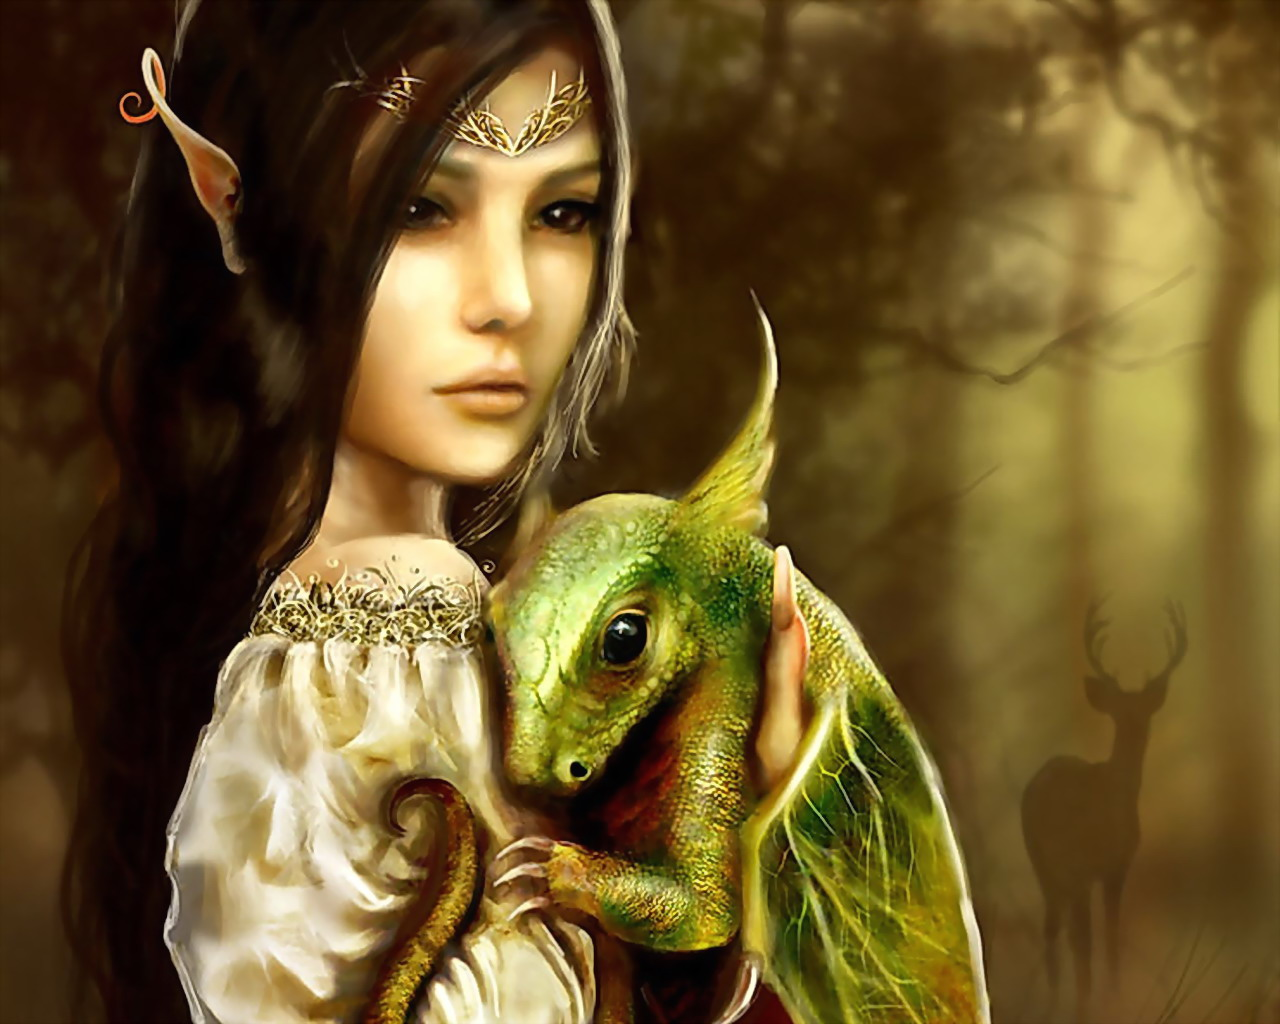 Beautiful Elf Of Life, Elven Girls 2